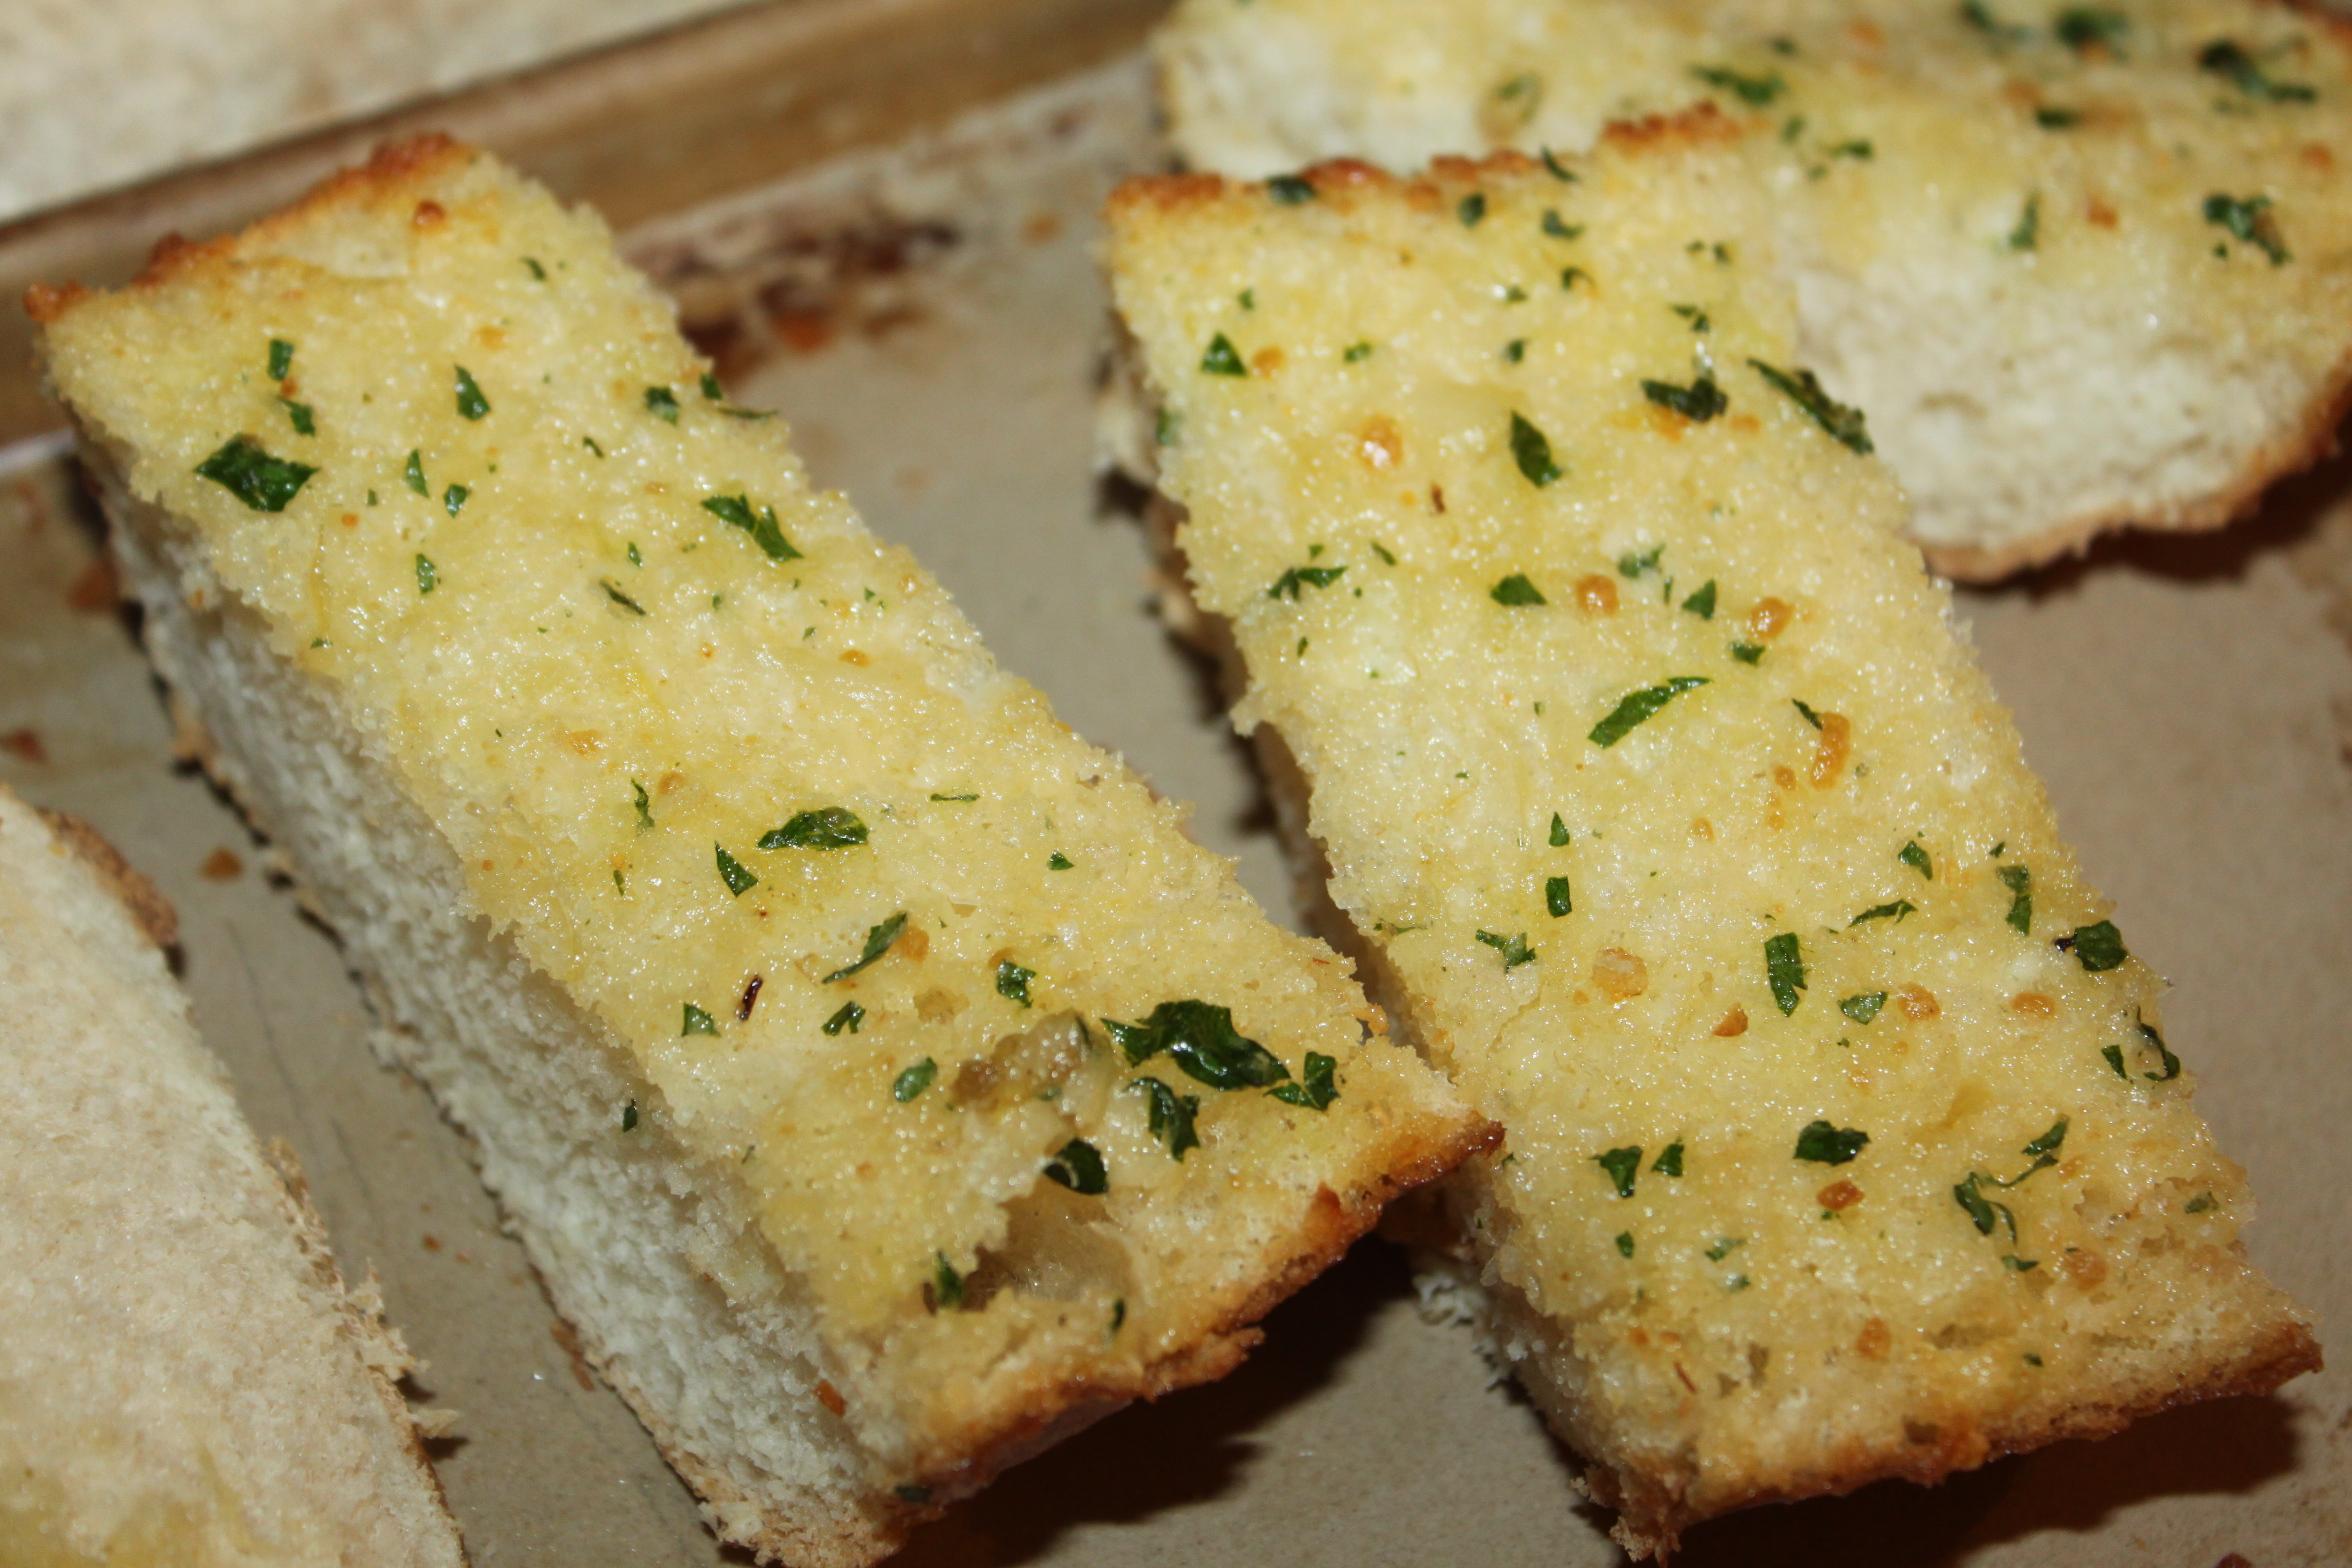 Homemade Garlic Bread Recipe - Delicious! - Old World Garden Farms